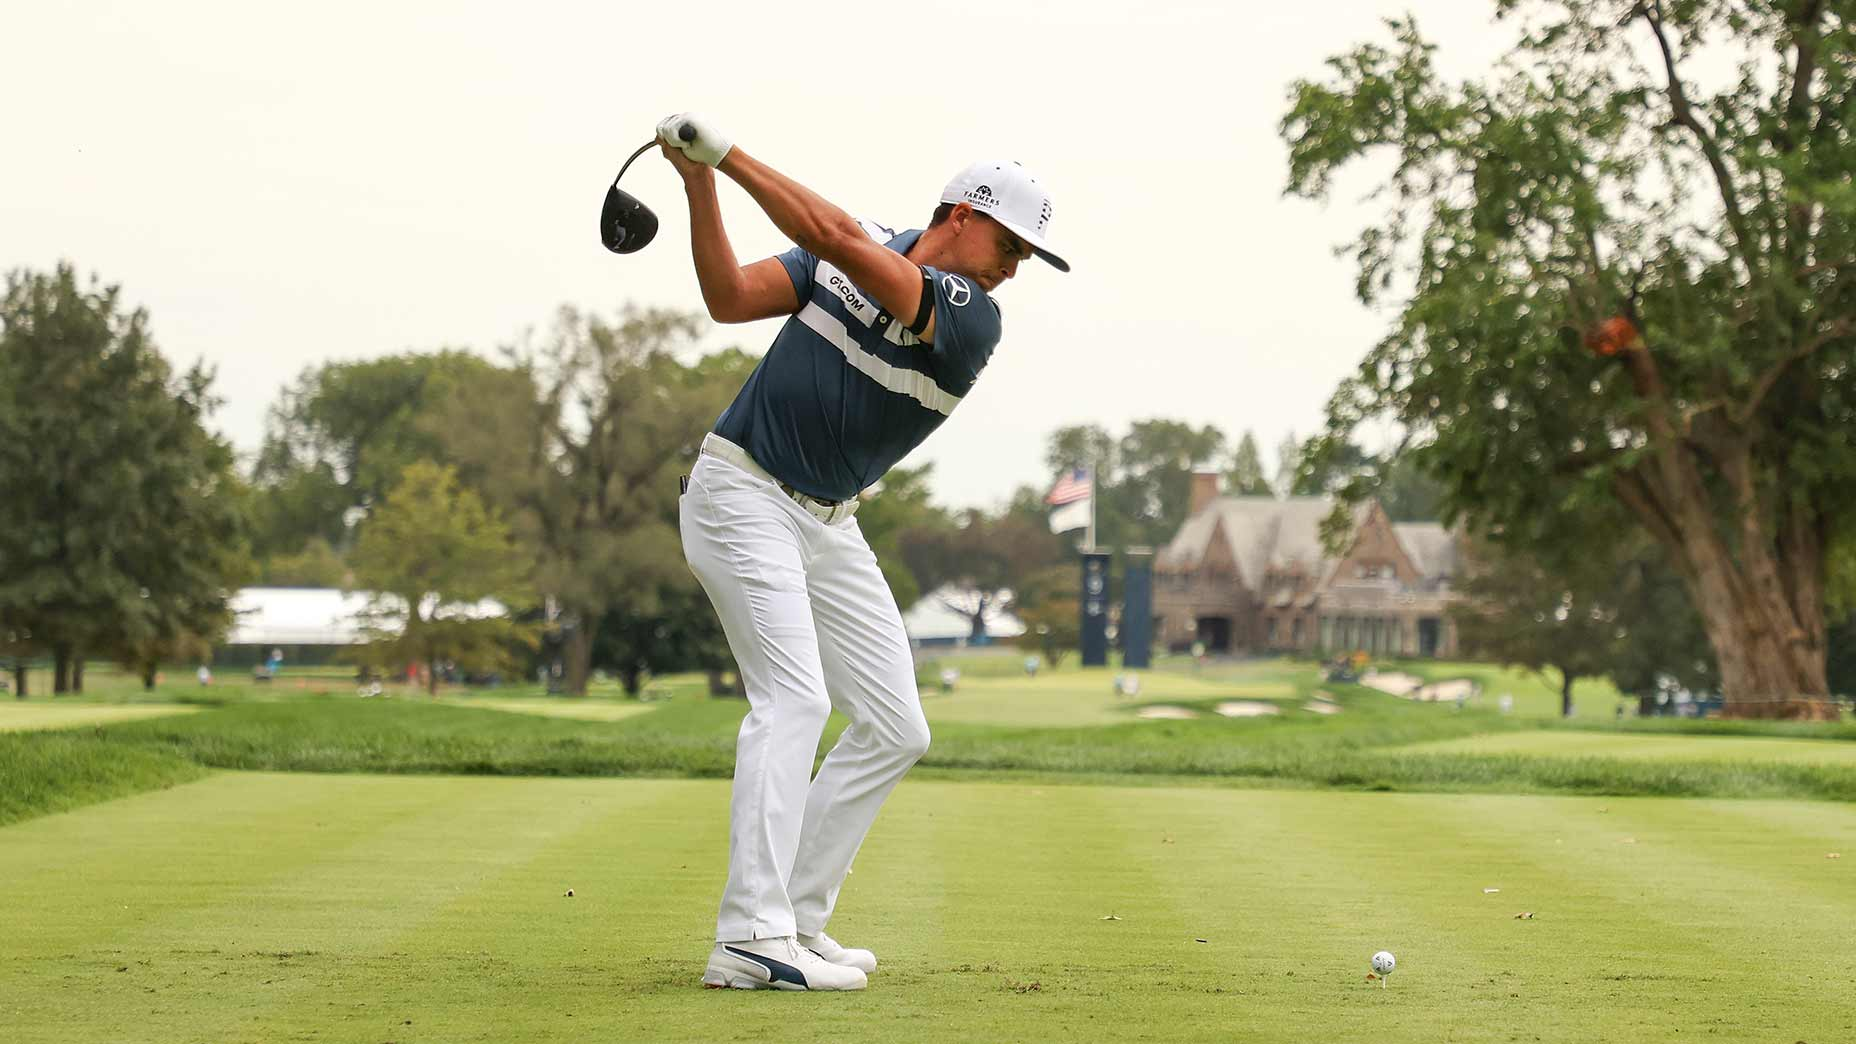 Rickie Fowler's mobility routine has helped him make some swing changes.